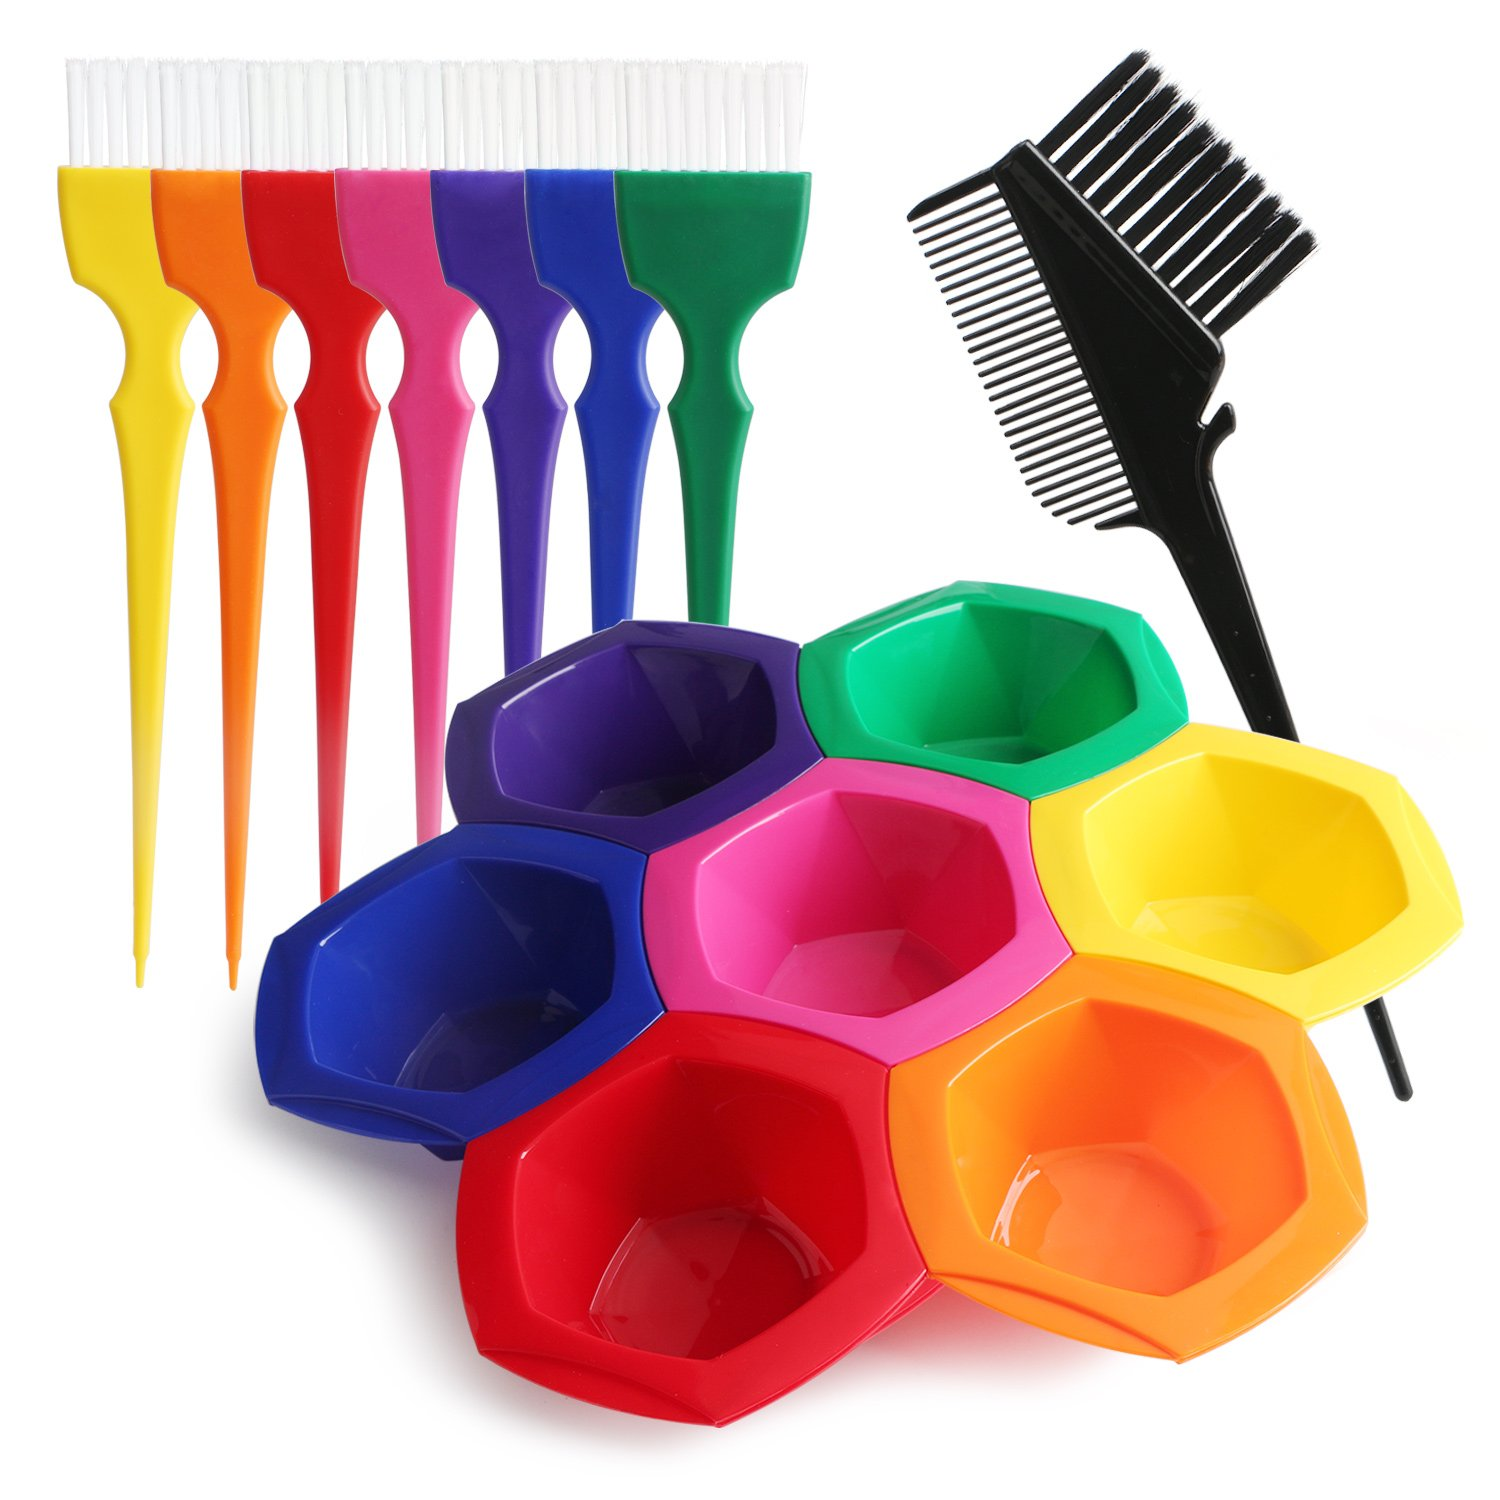 DIY/Professional Tint Kit, Segbeuaty Hair Coloring Highlighting Tools on Hair Dye, Rainbow Hair Color Mixing Bowls Brushes Comb for Dyed Hair, Omber Hair Dye or Art Paint Palatte by Segbeauty